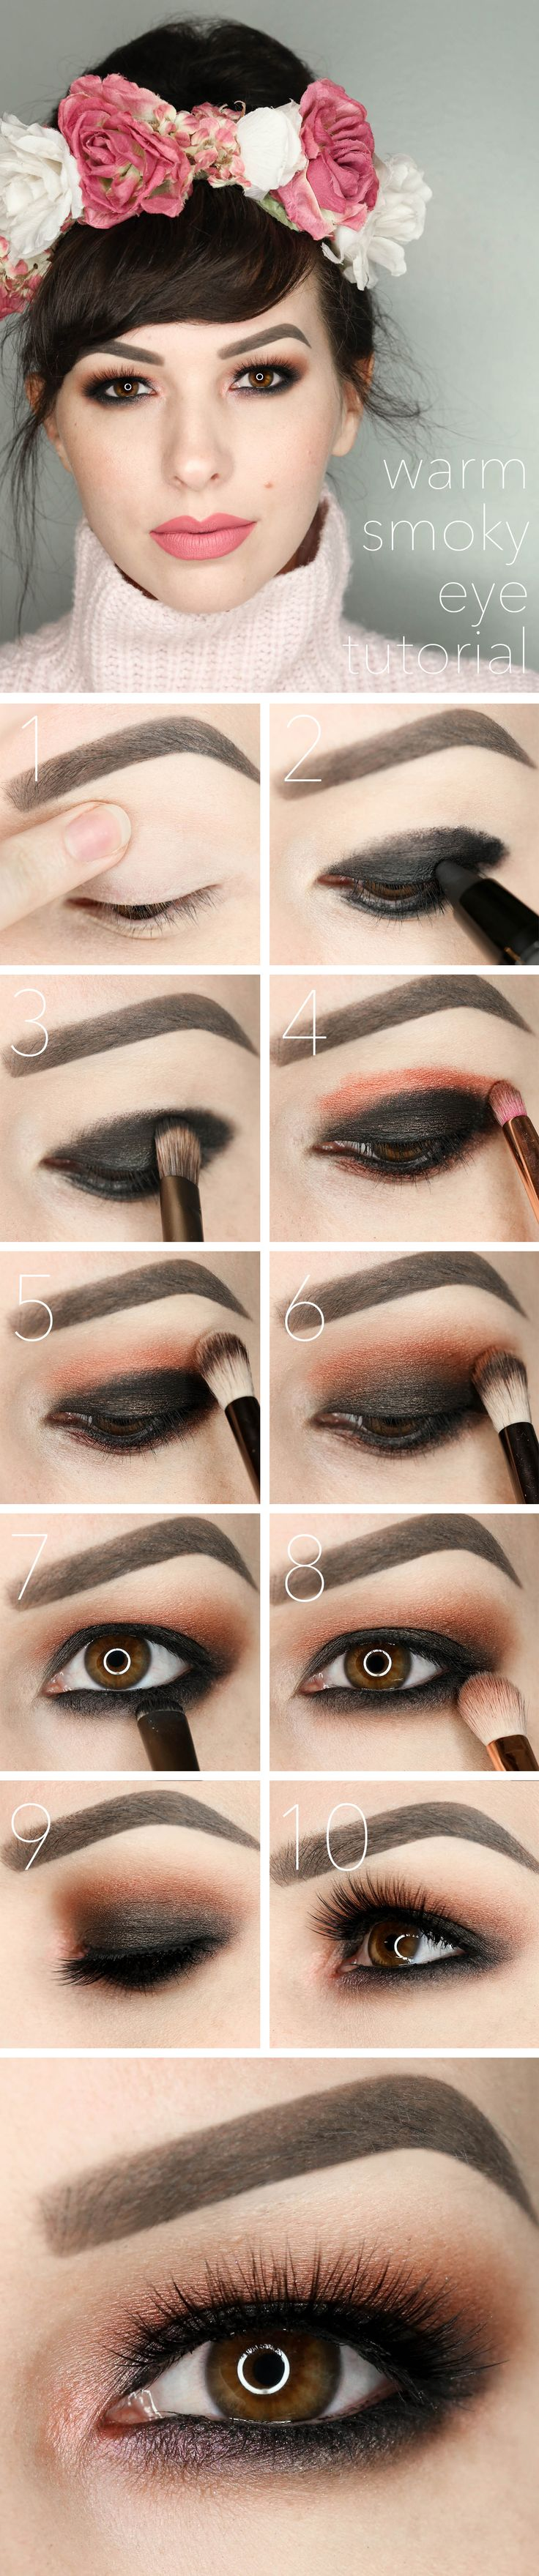 Warm Smoky Eye Tutorial Valentines Day Makeup-Follow this step by step, warm smo...